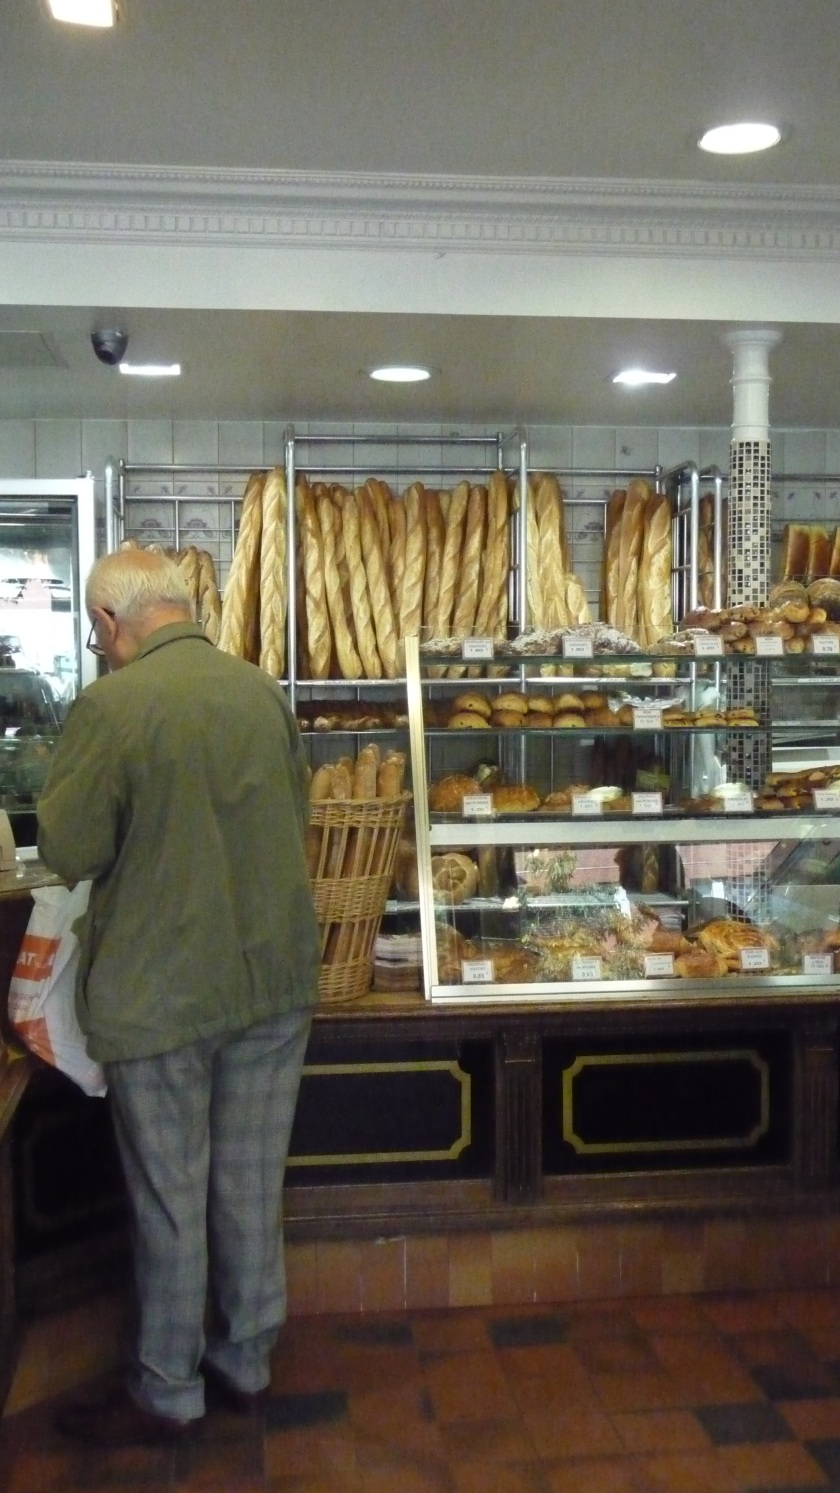 Bakery in France